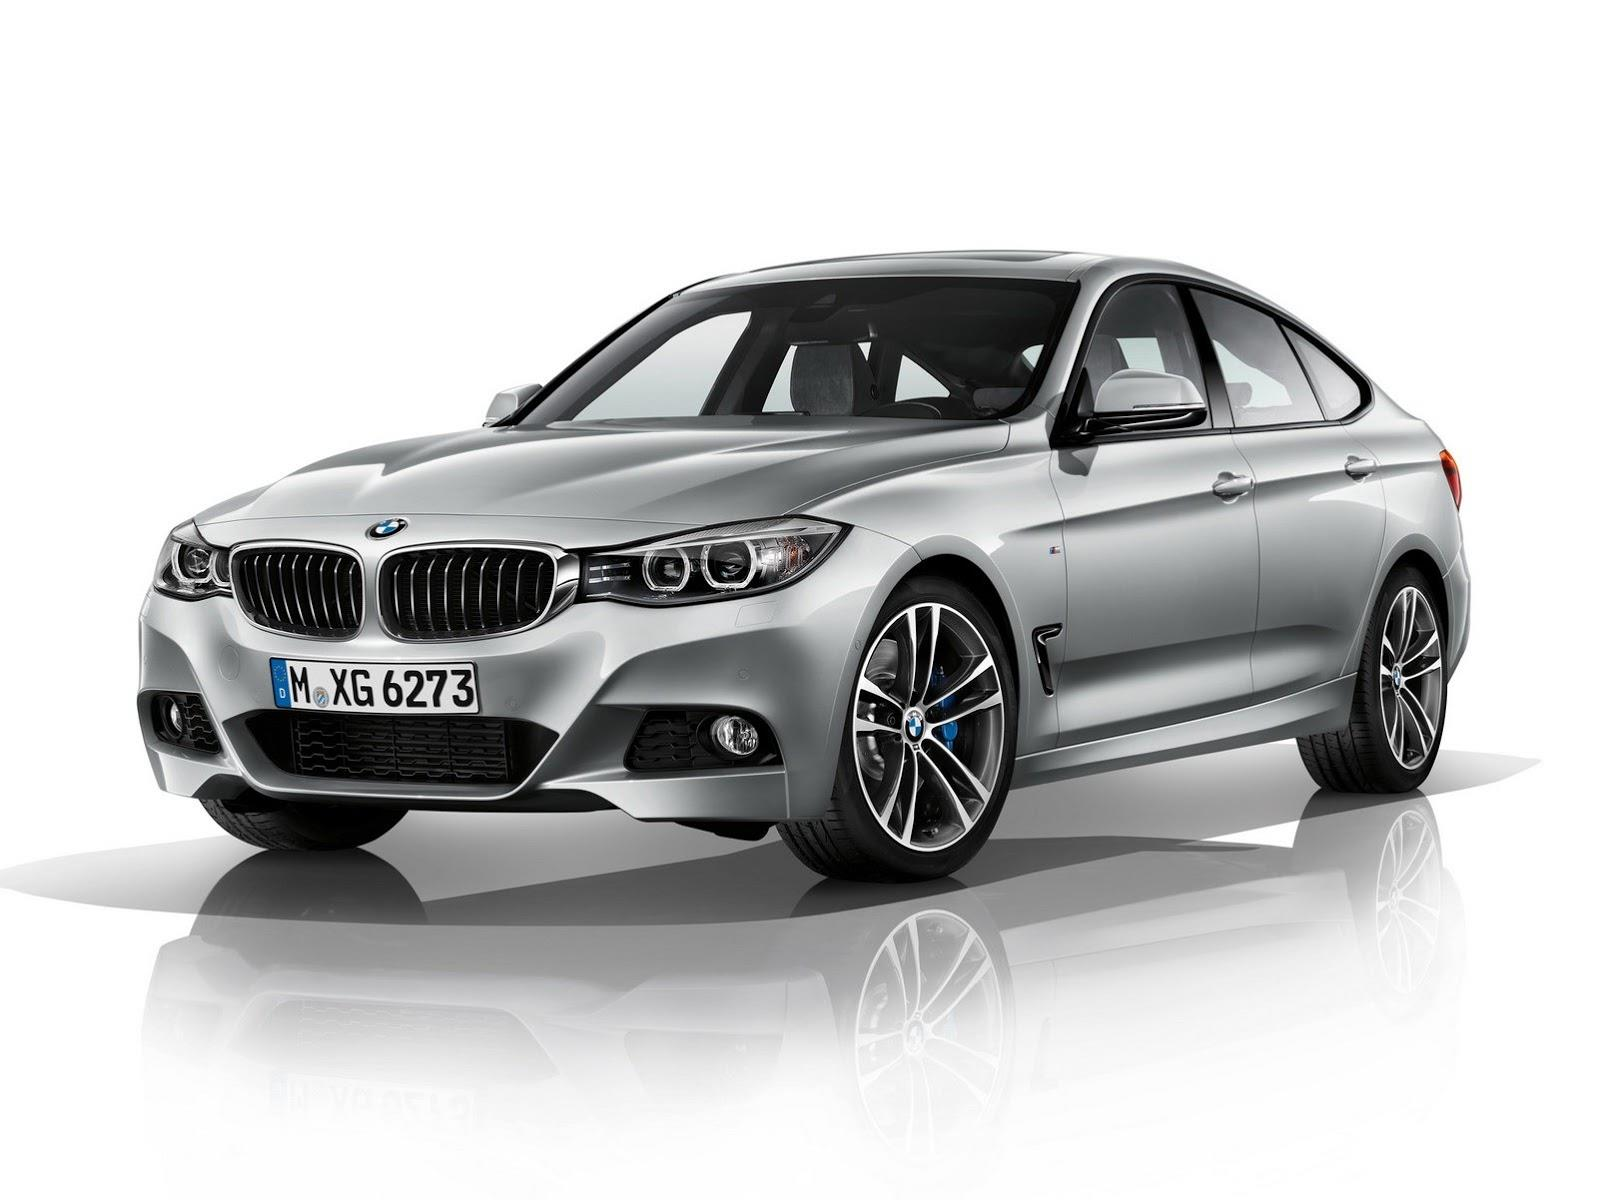 2013 BMW 3-series GT gallery